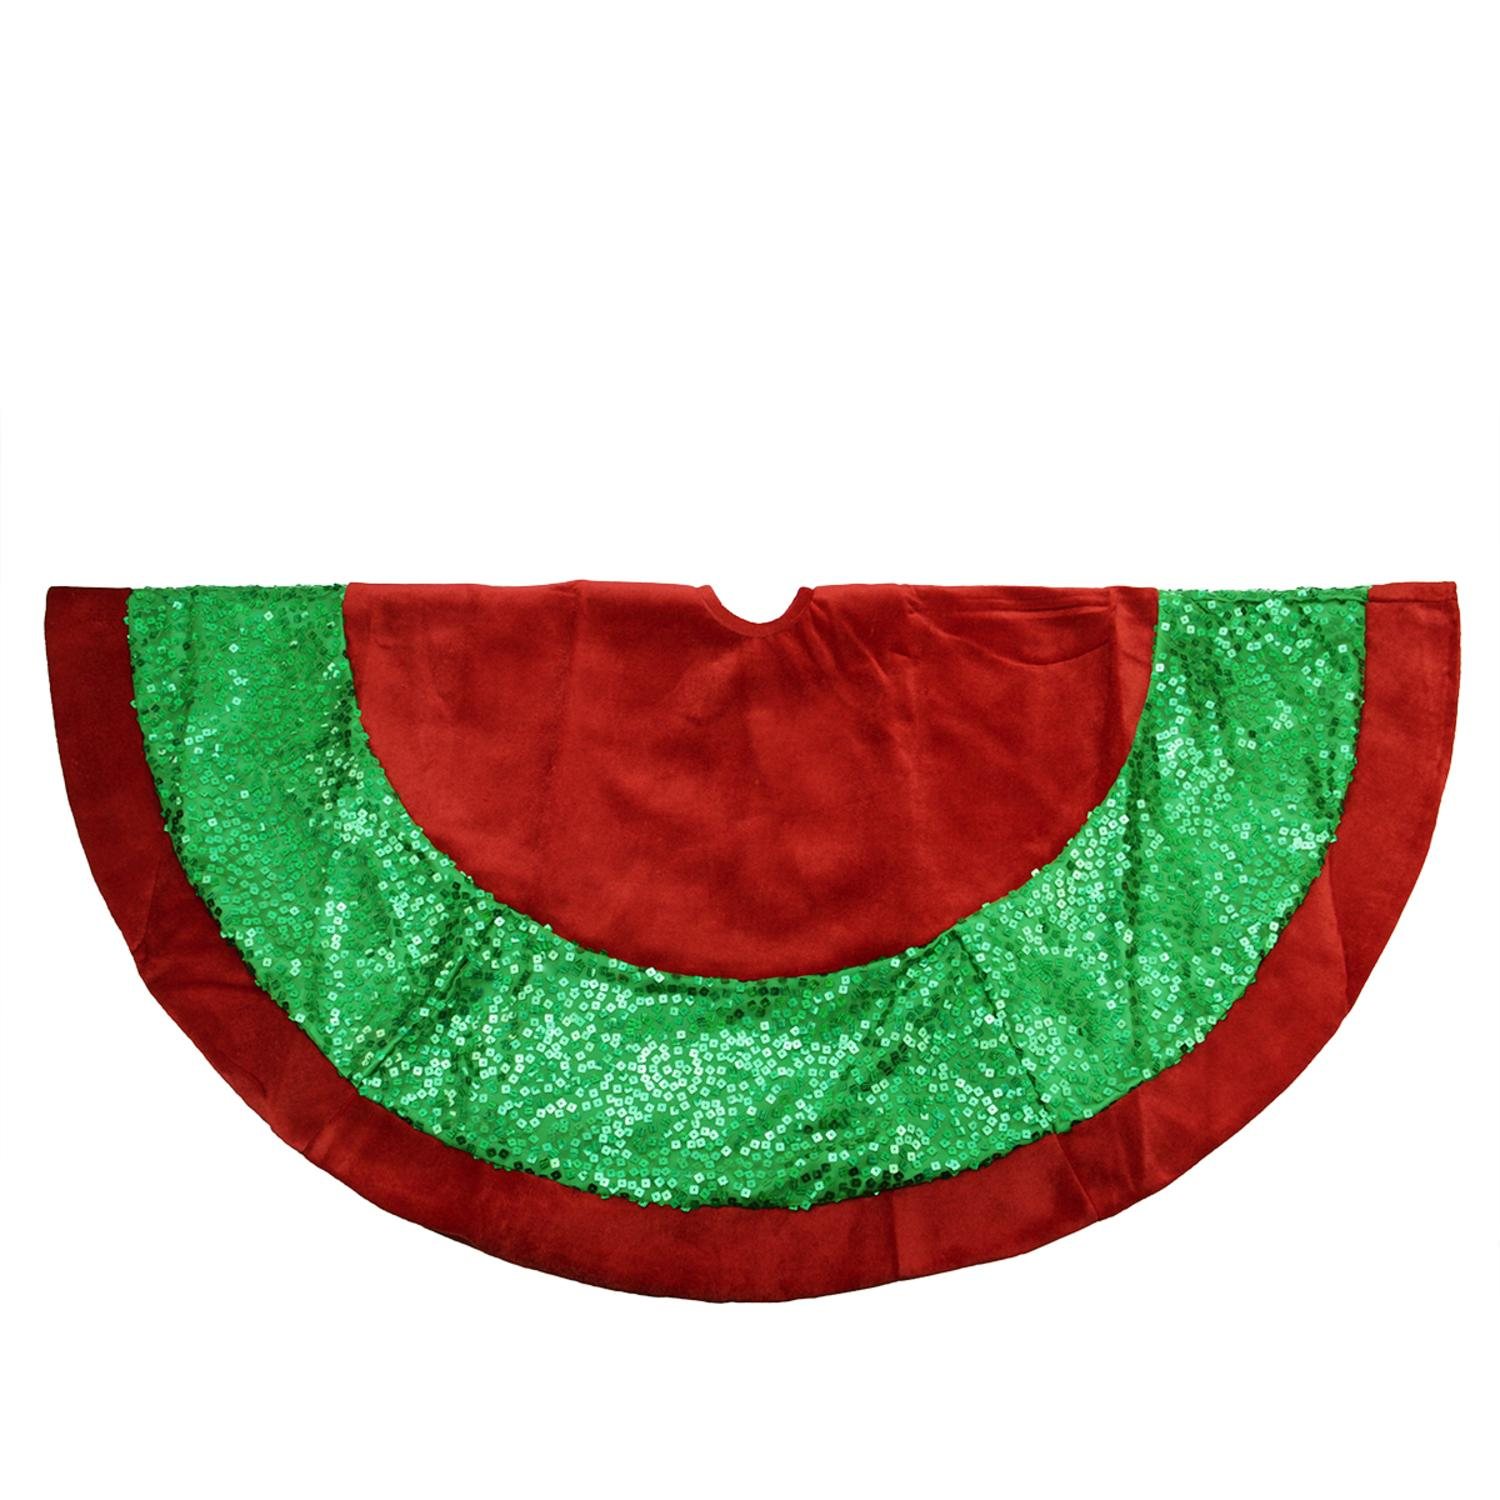 "48"" Green Holographic Sequined Christmas Tree Skirt with Red Velveteen Trim"